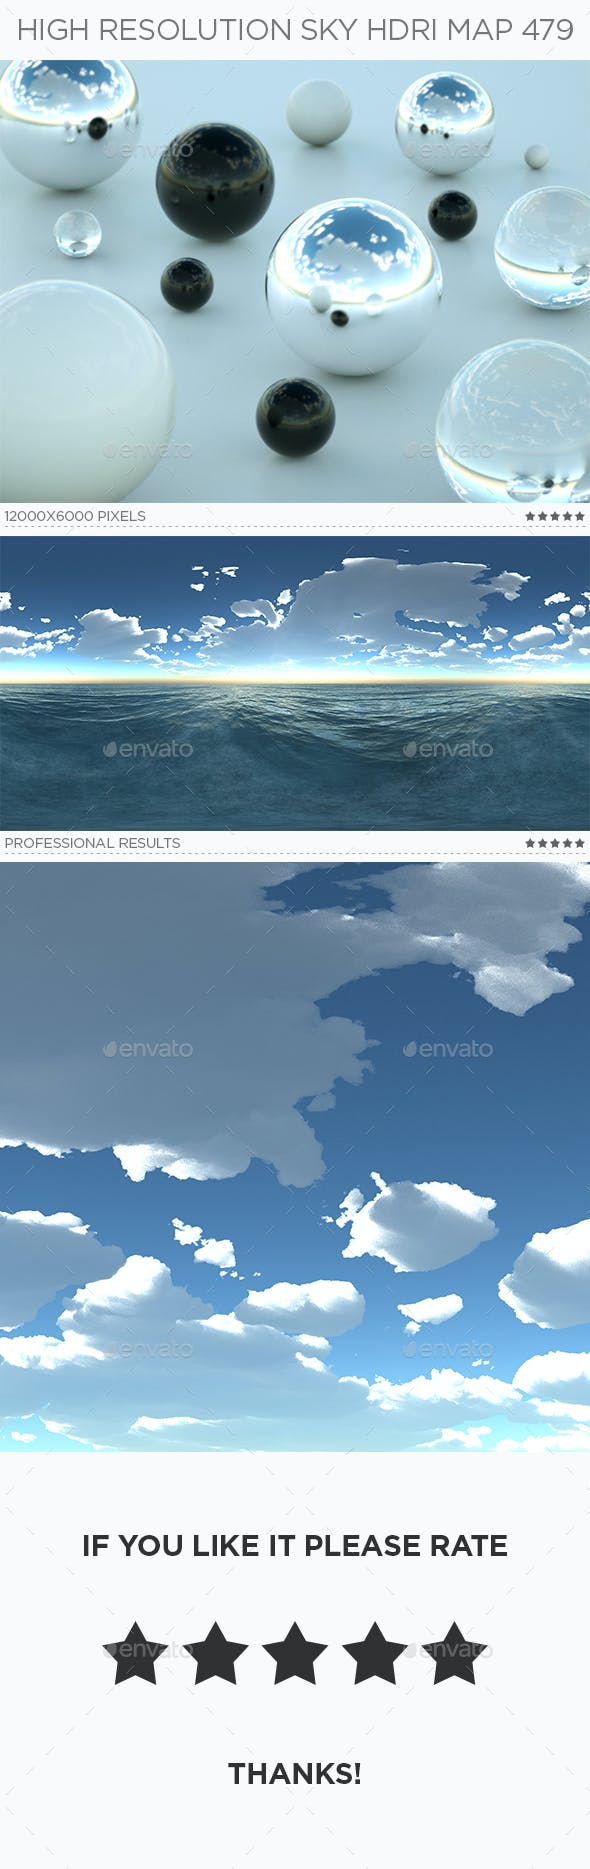 High Resolution Sky HDRi Map 479 - 3DOcean Item for Sale